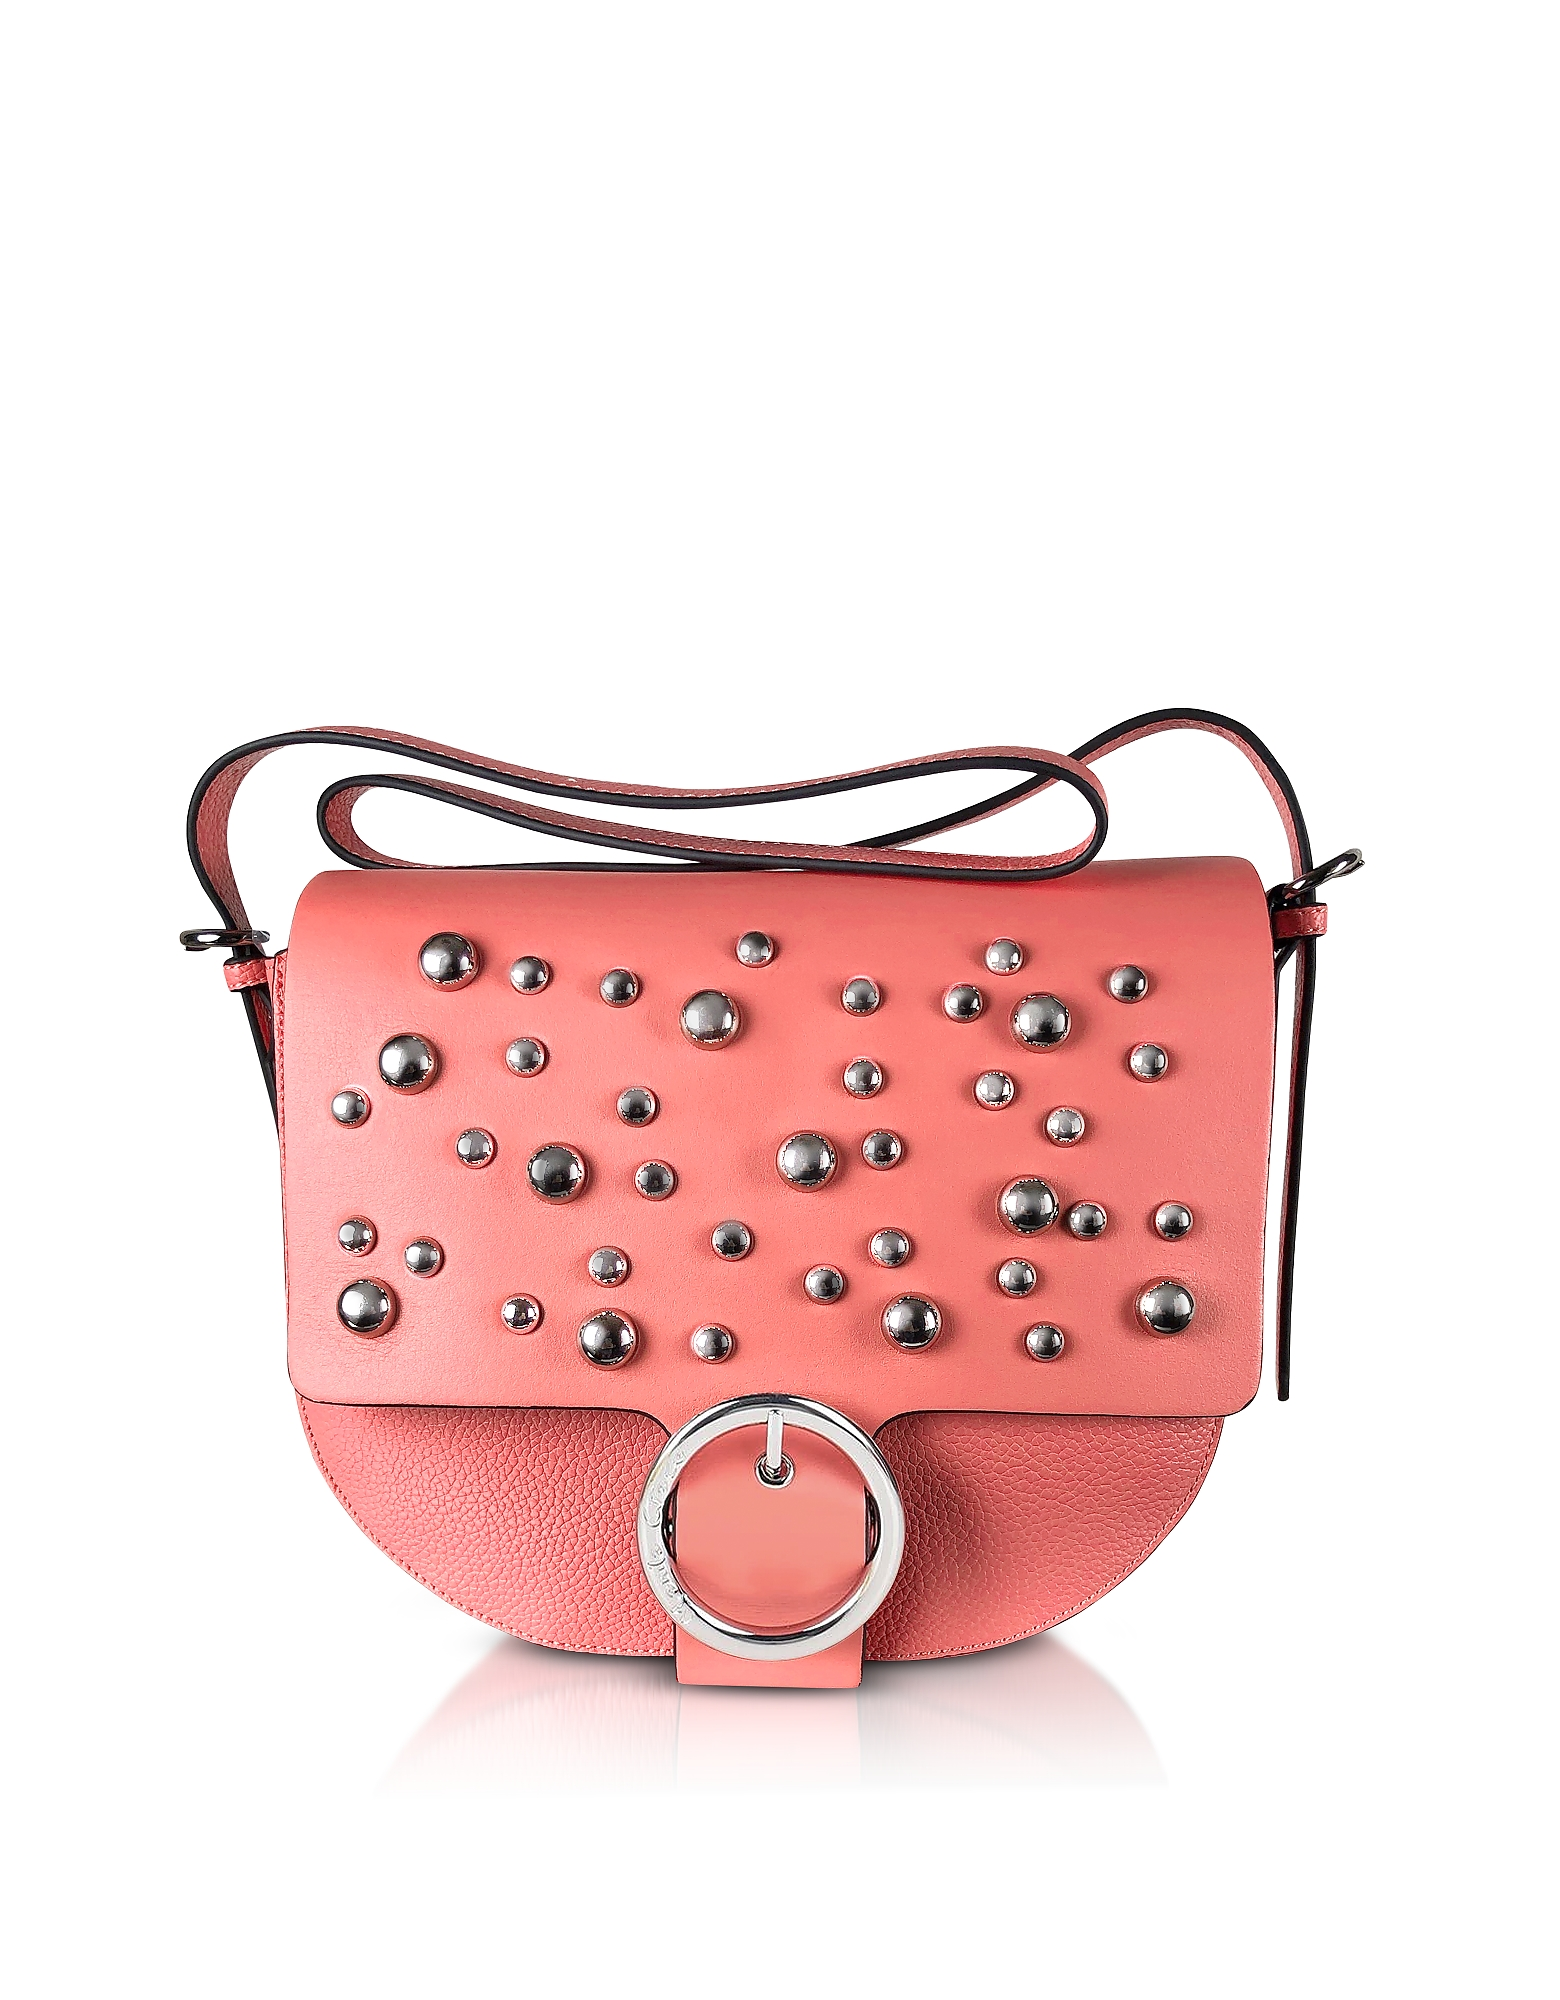 Manila Grace Designer Handbags, Coral Pink Studded Shoulder Bag